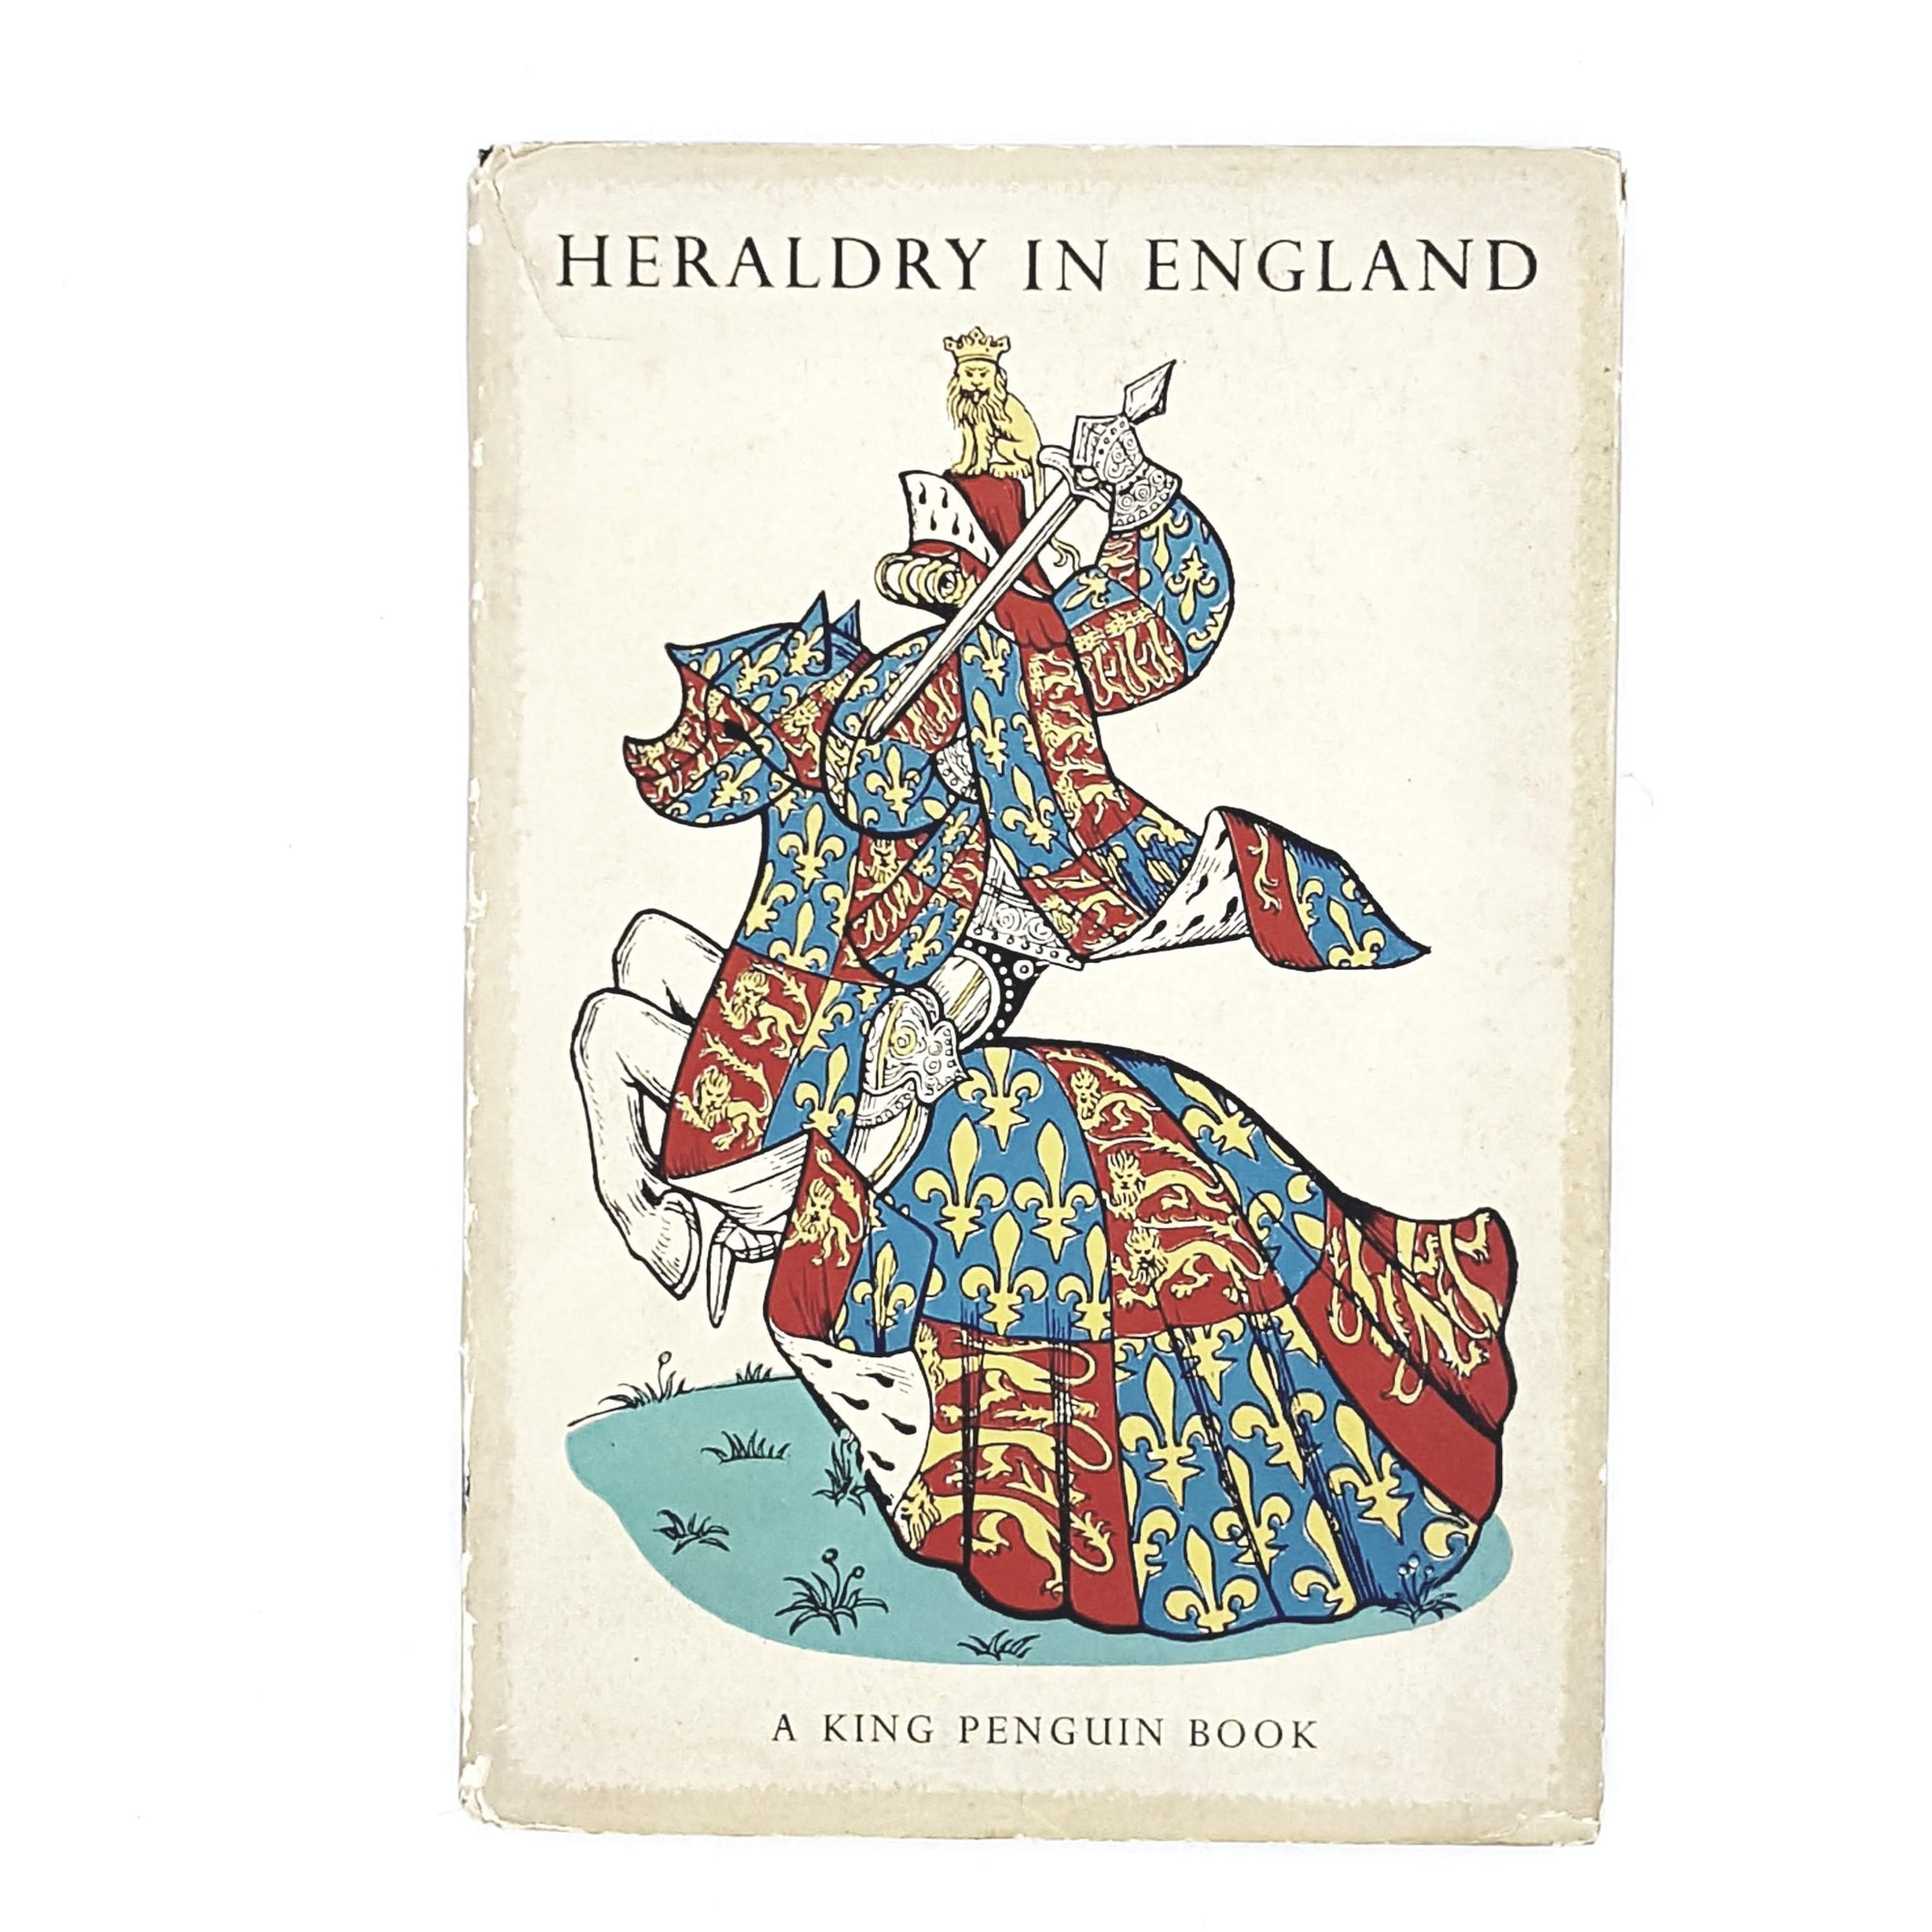 Heraldry in England by Anthony Wagner 1953